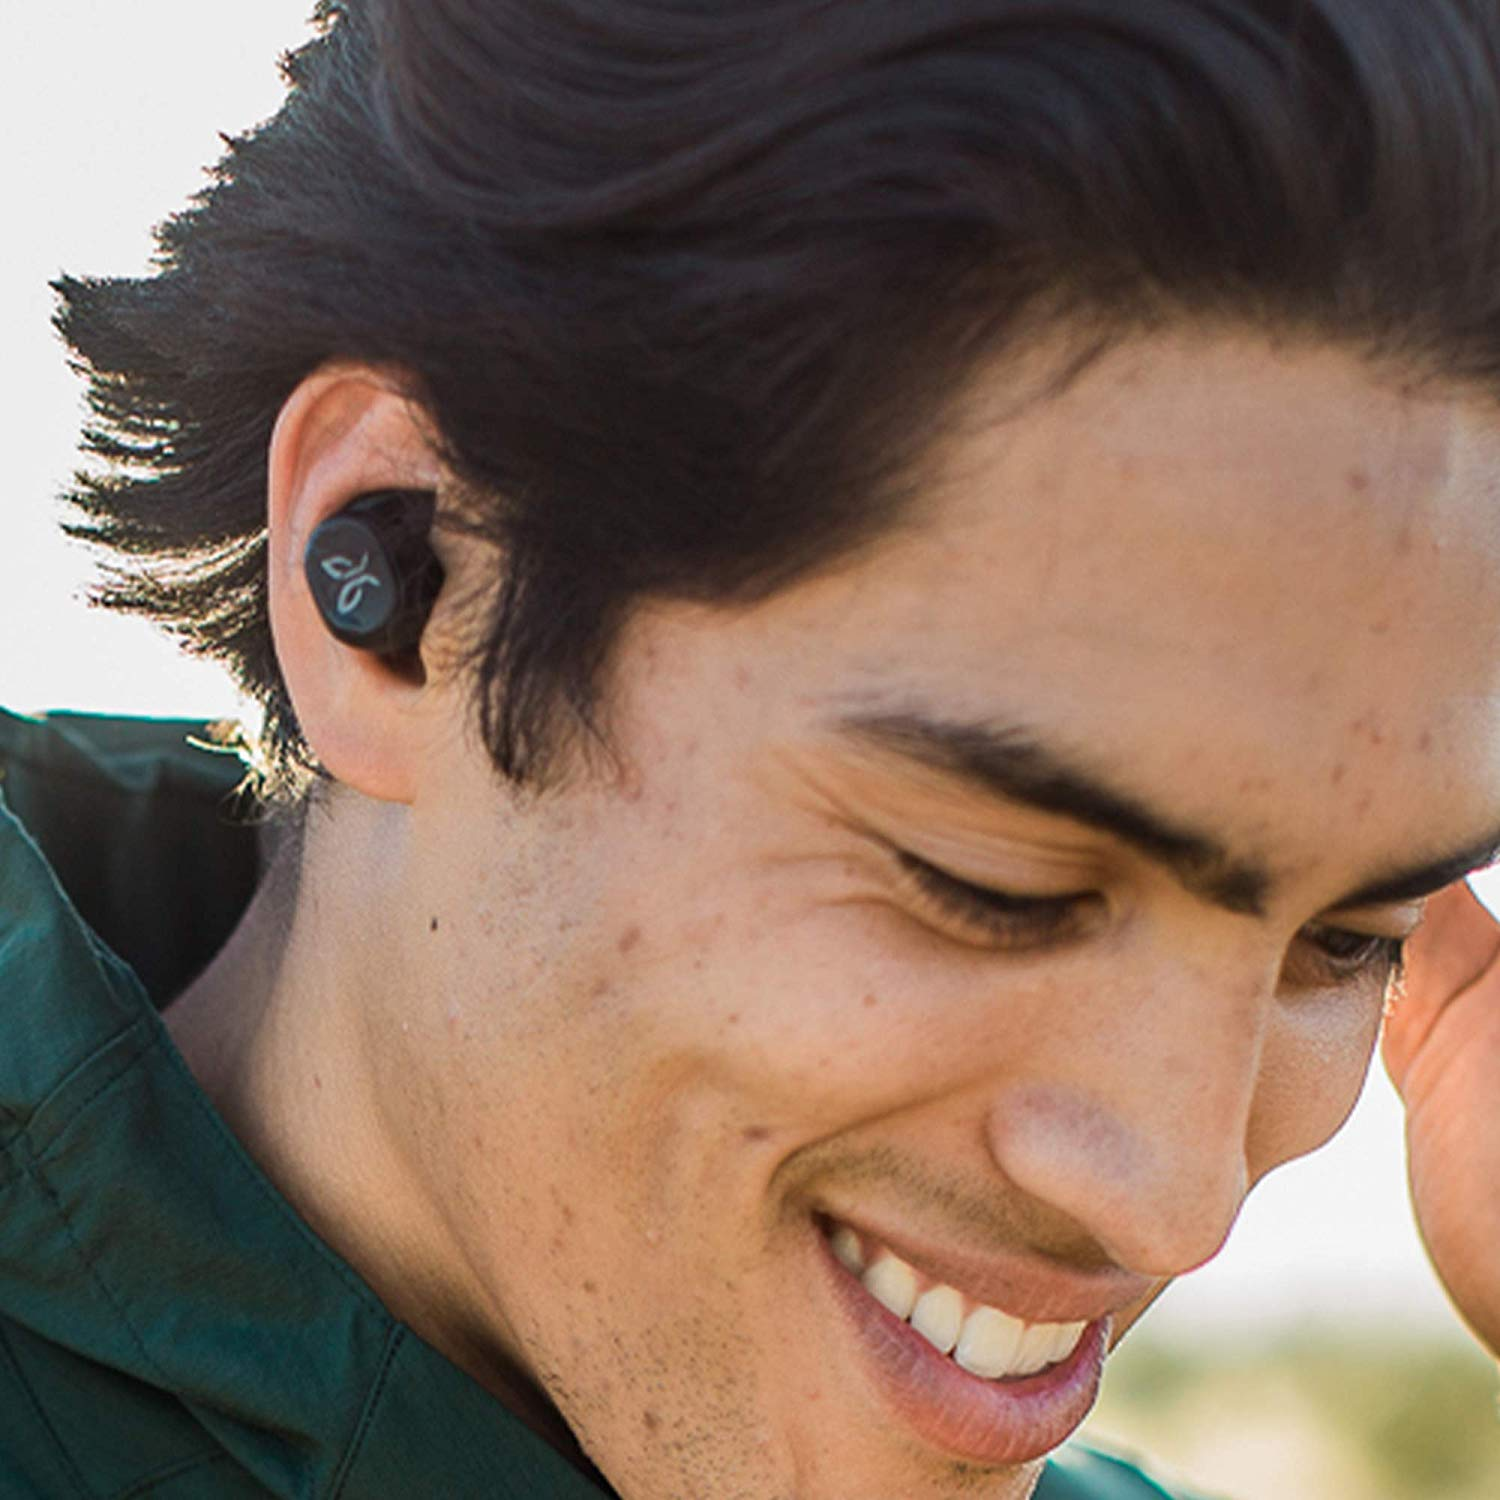 Jaybird Vista True Wireless earbuds